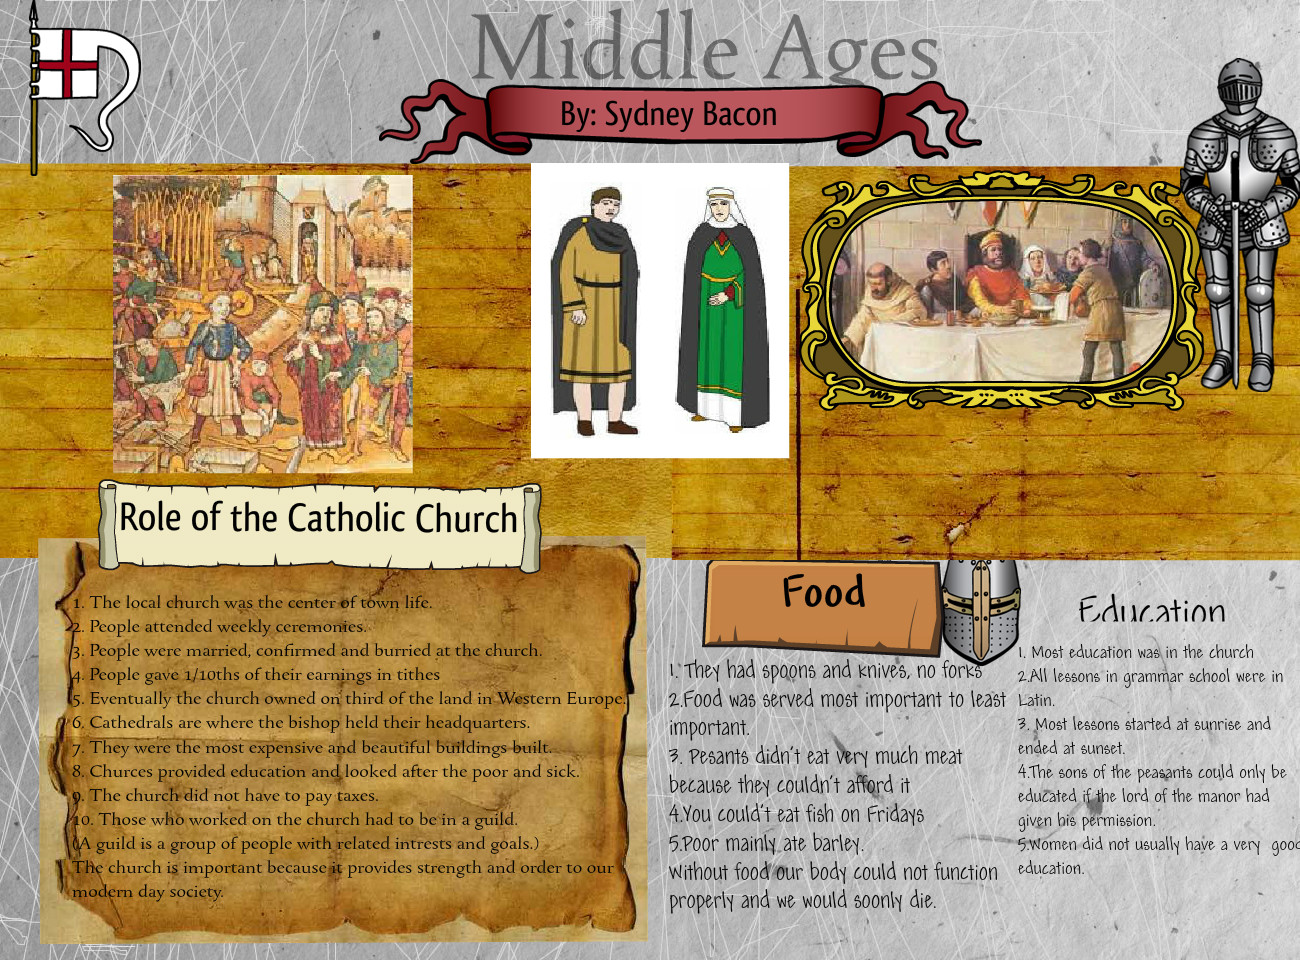 [2014] Sydney Bacon (GTT 7 - Period 3): Middle Ages